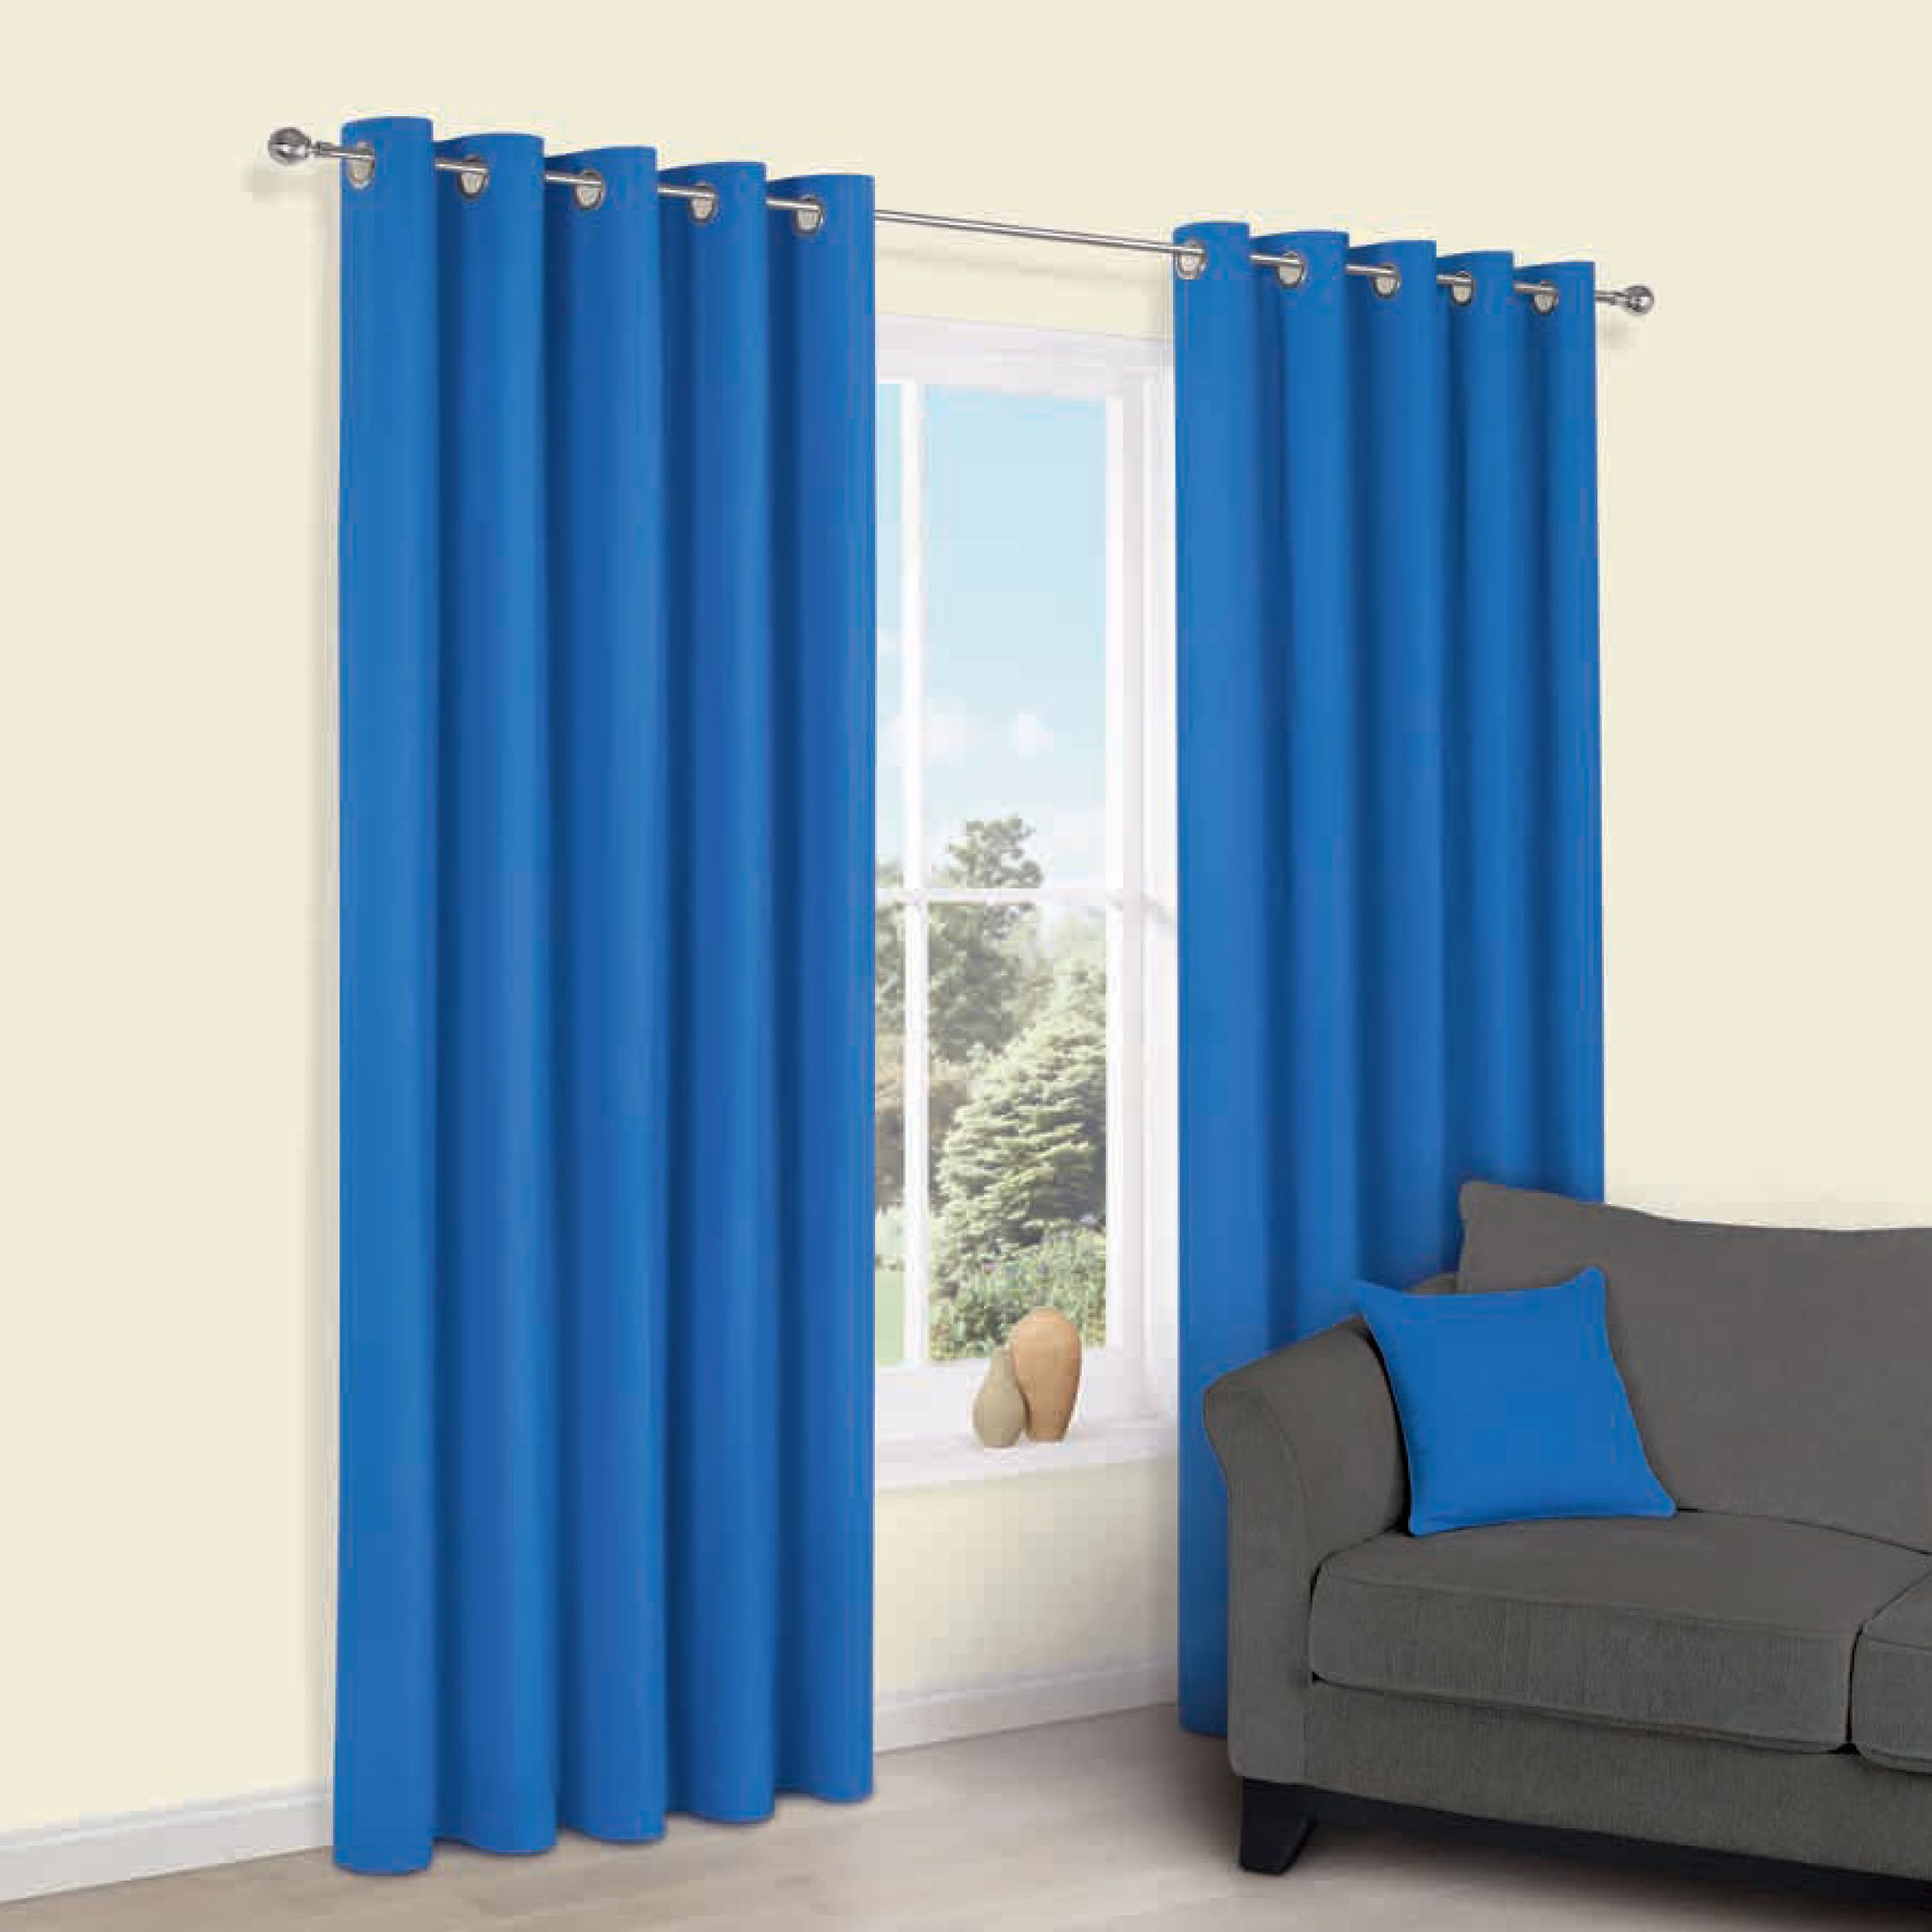 Zen Blue Plain Eyelet Curtains (w)167cm (l)228cm